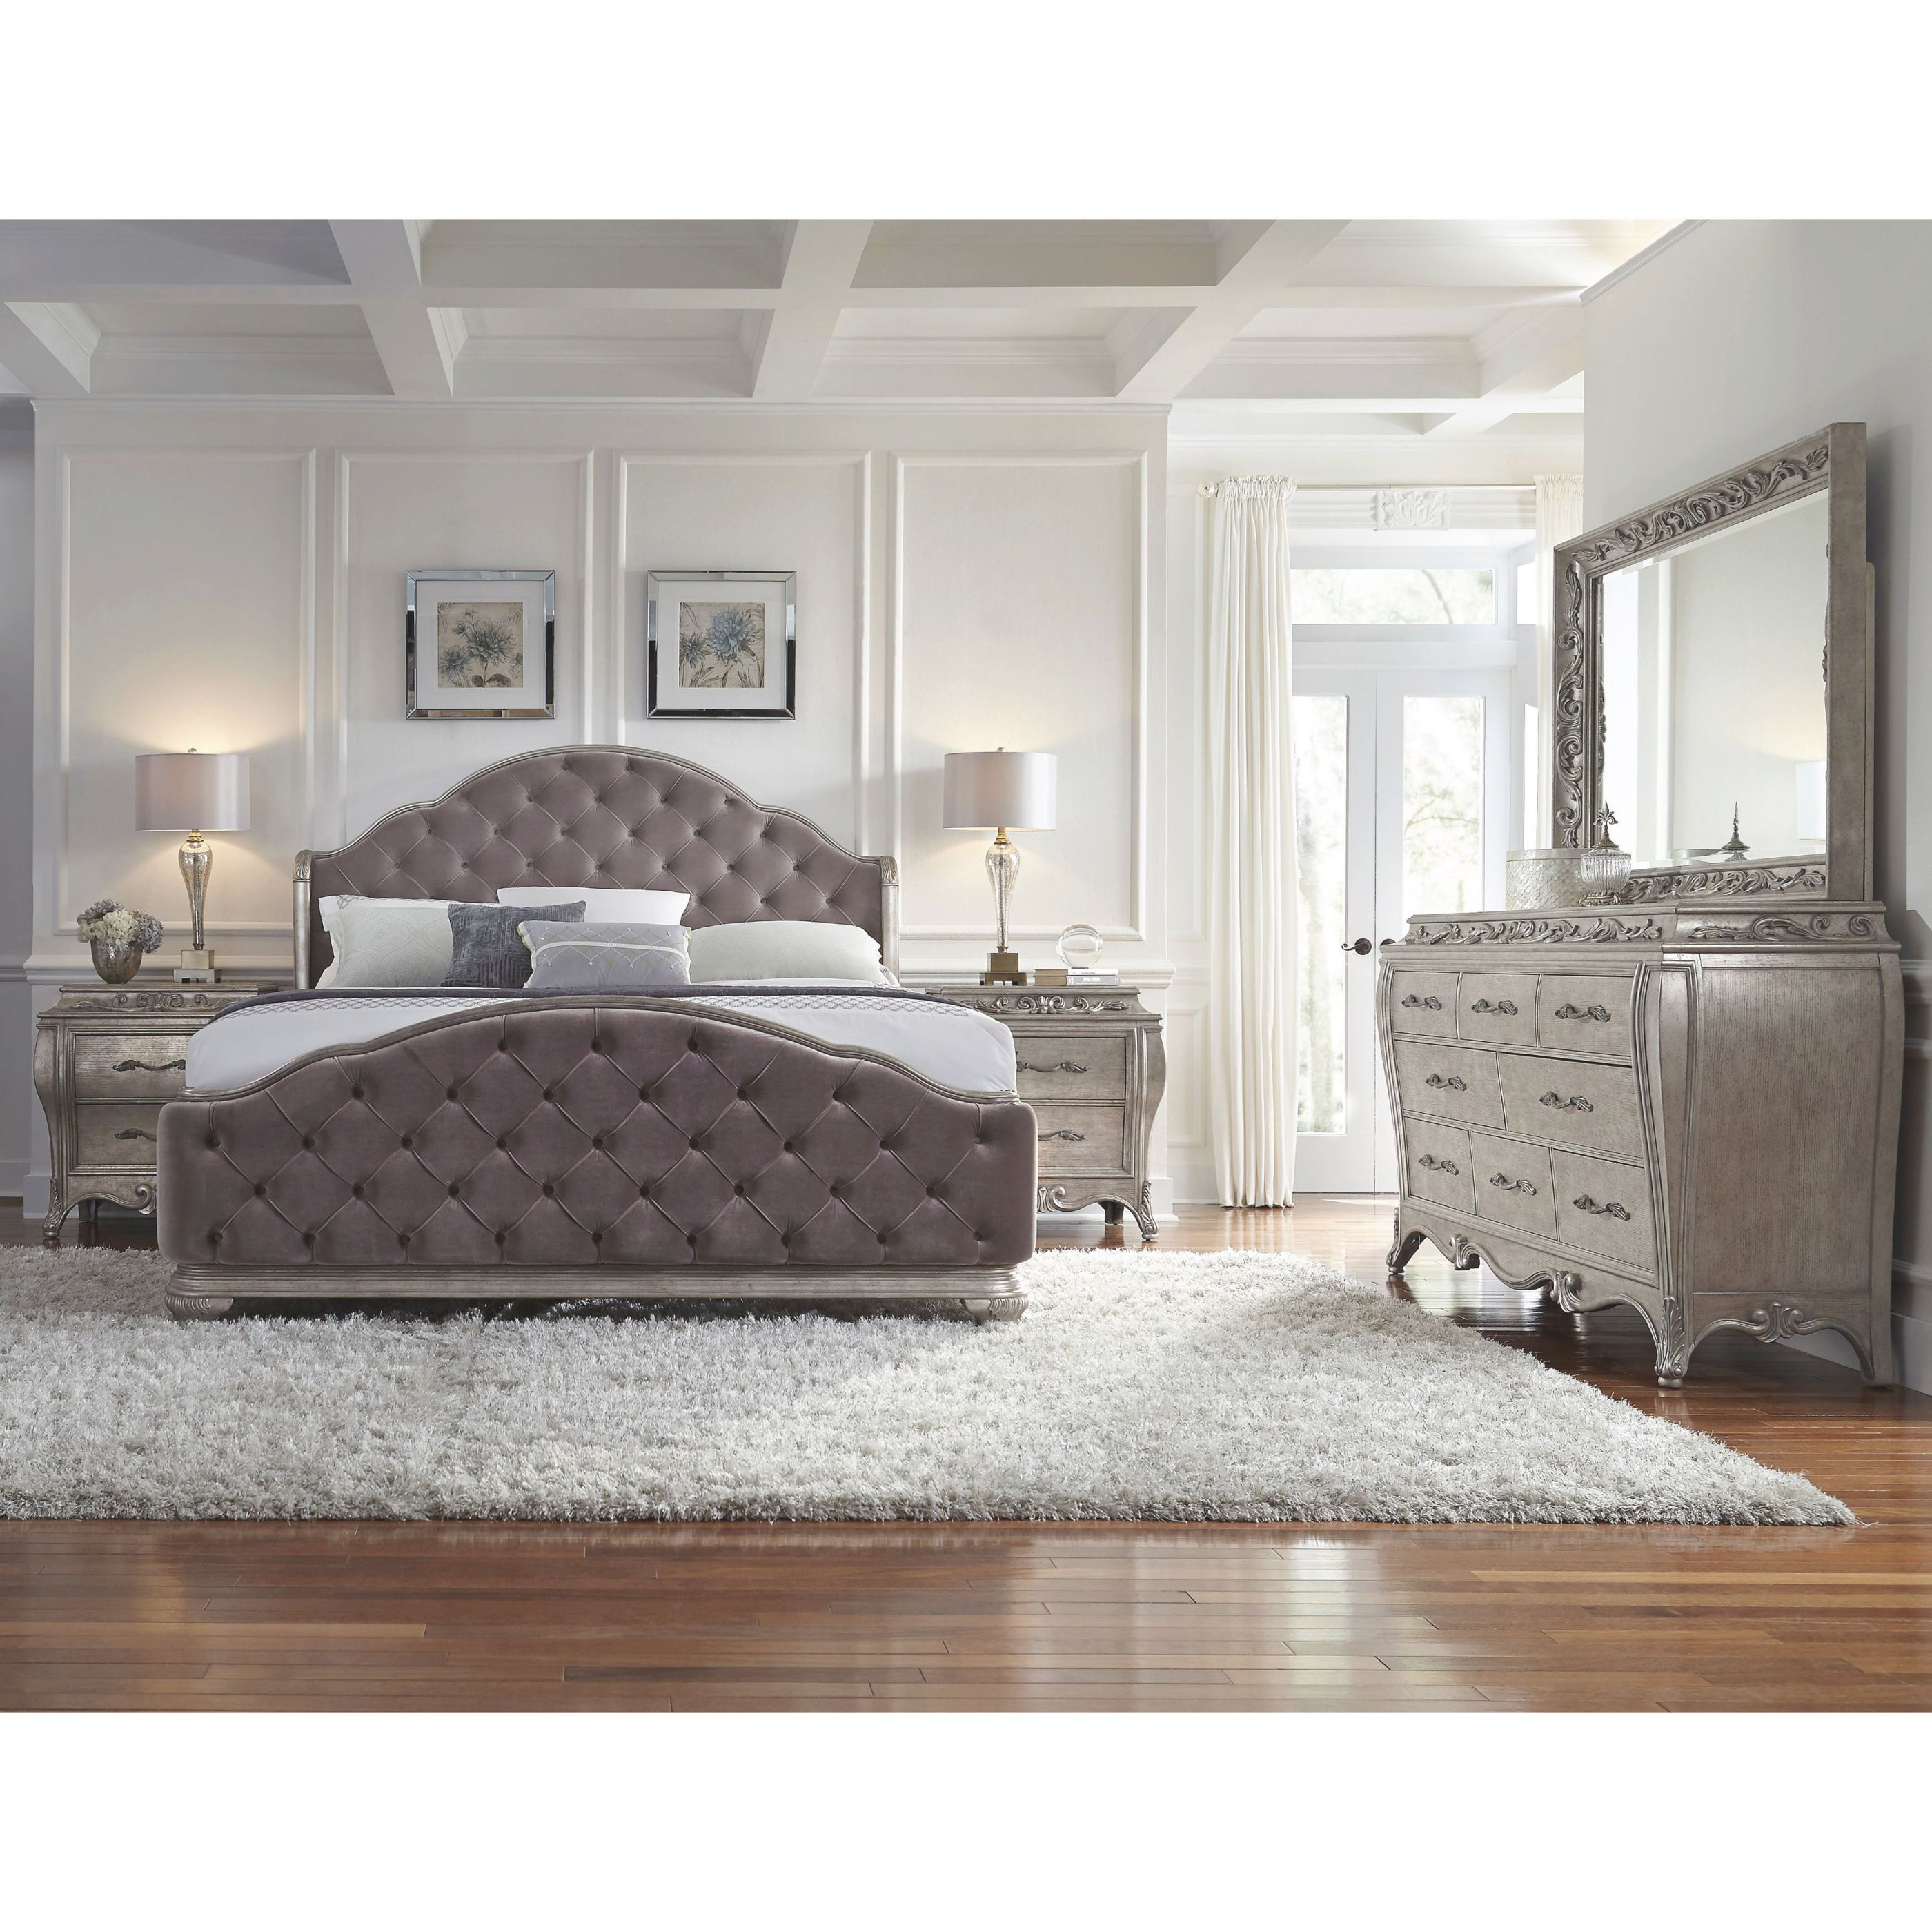 Anastasia 6-Piece King-Size Bedroom Set pertaining to Bedroom Sets King